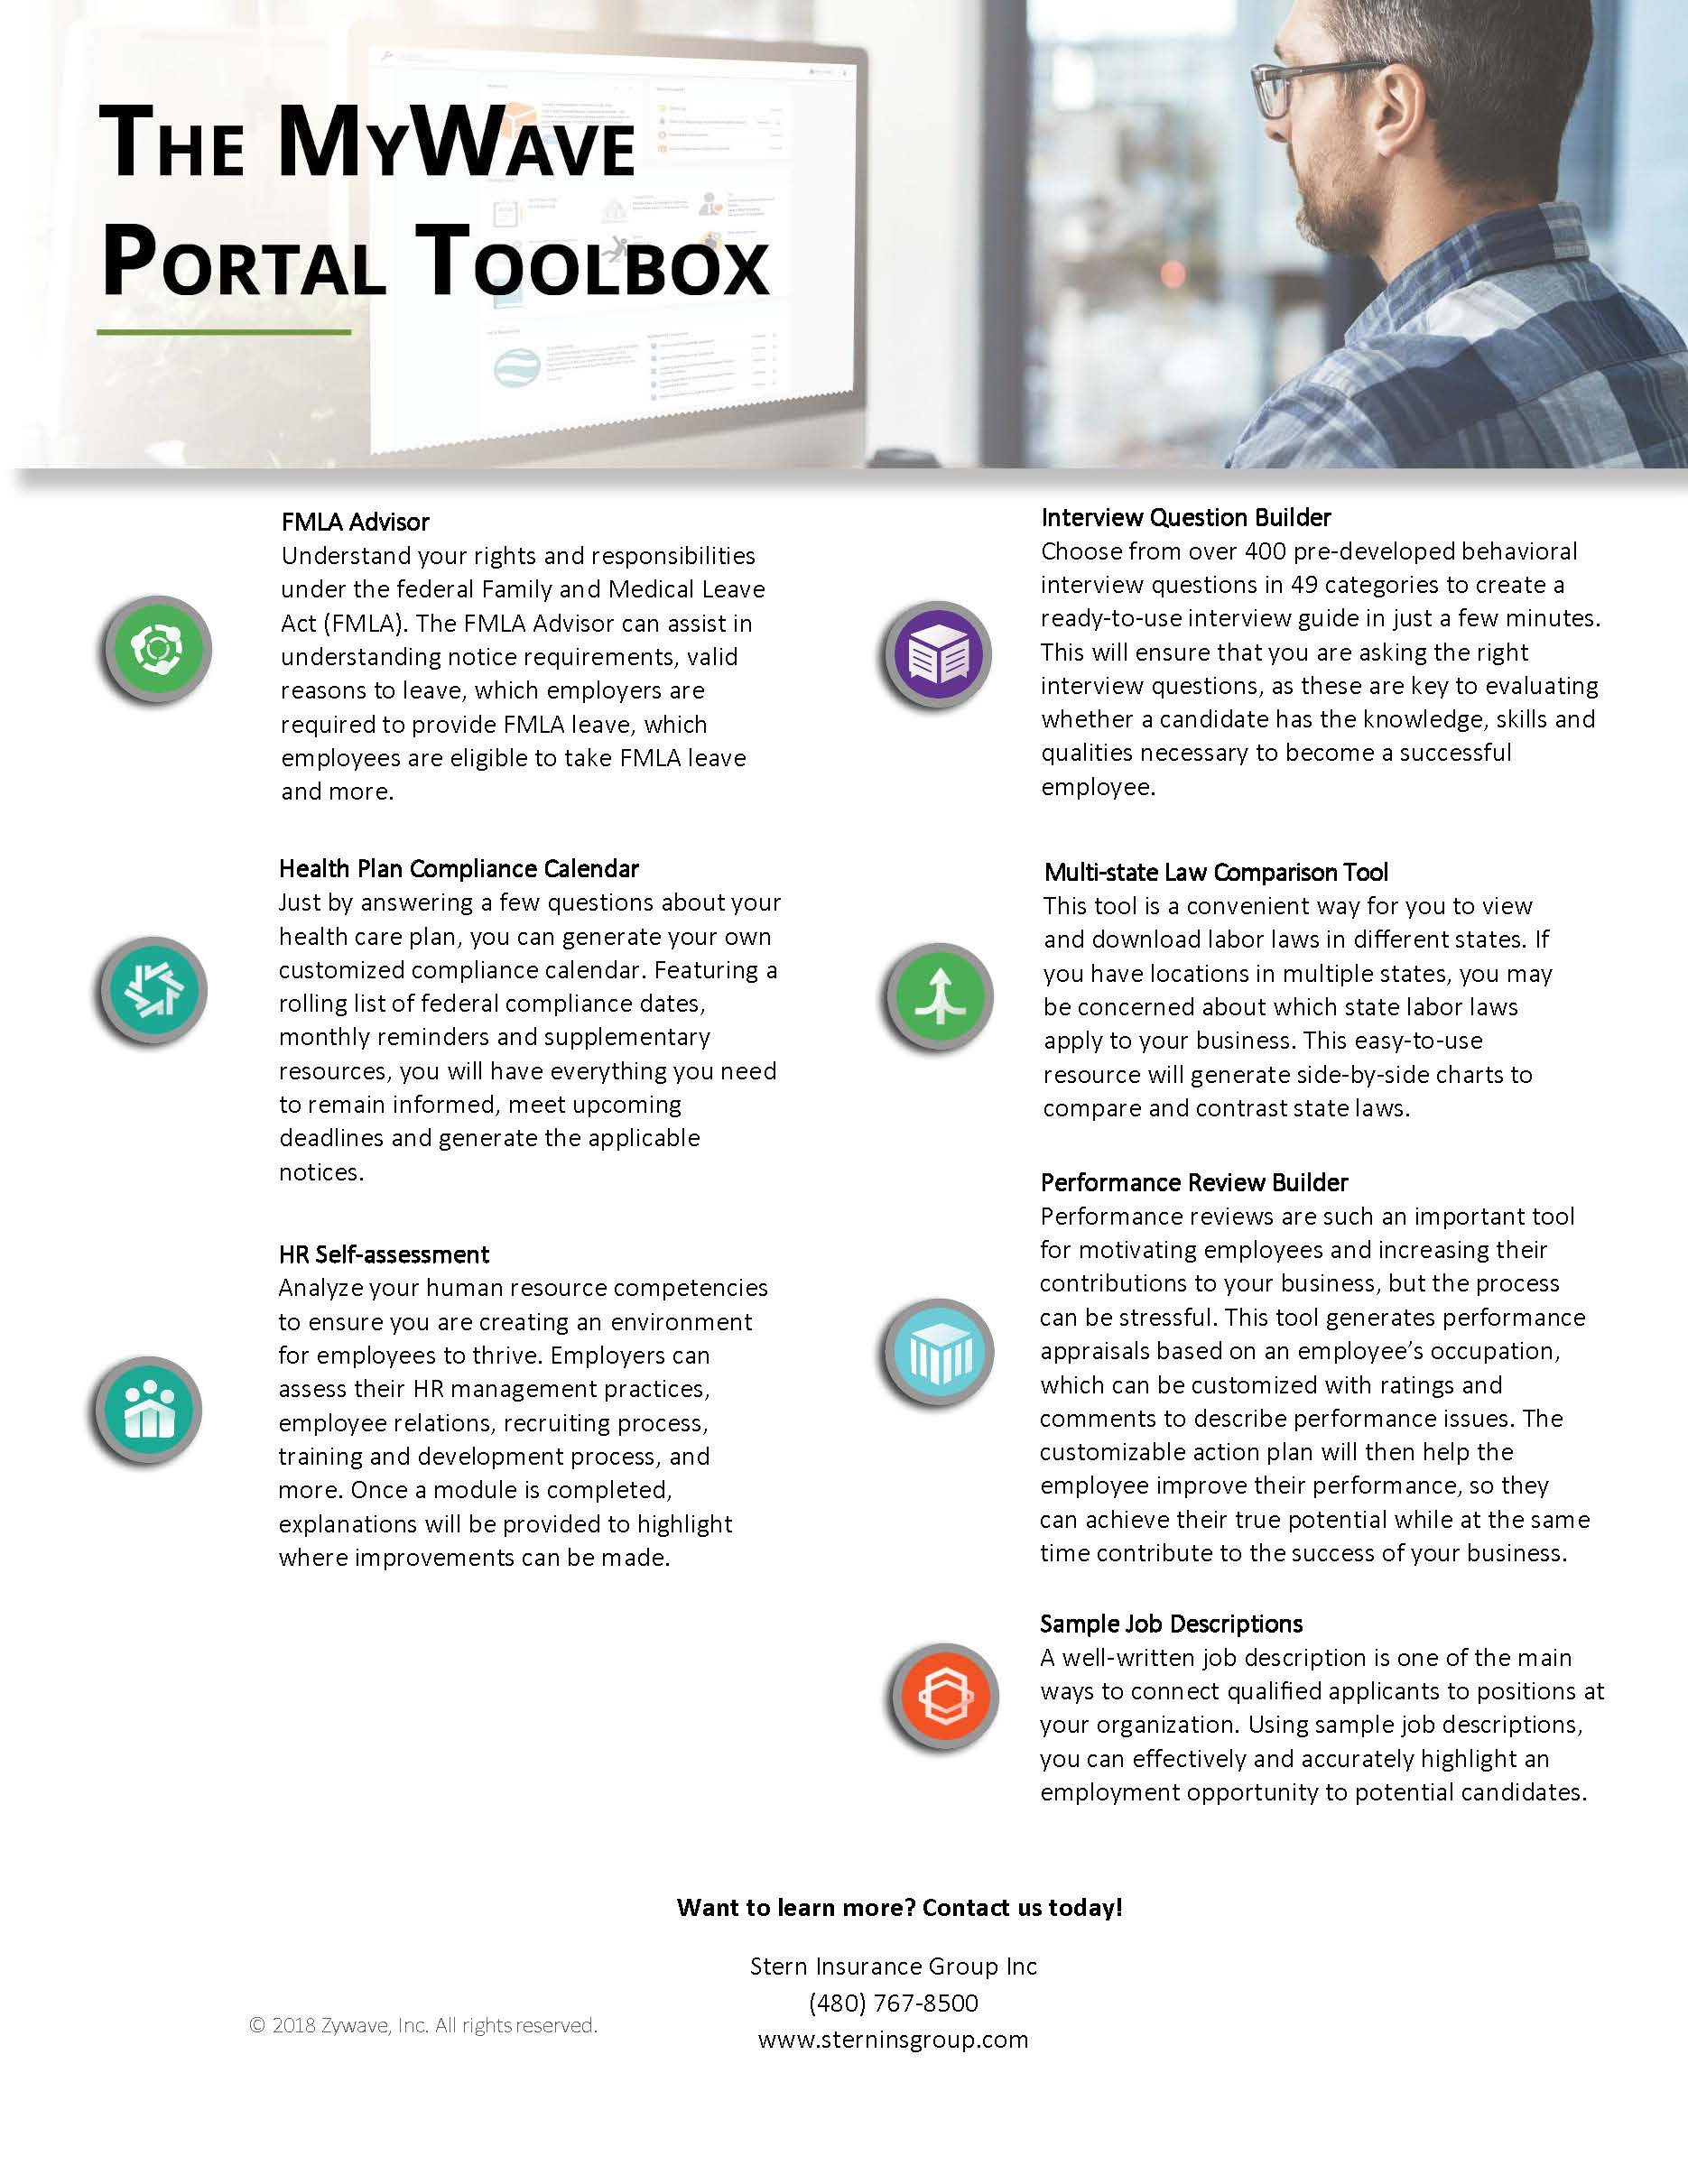 MyWave Portal Toolbox – Stern Insurance Group